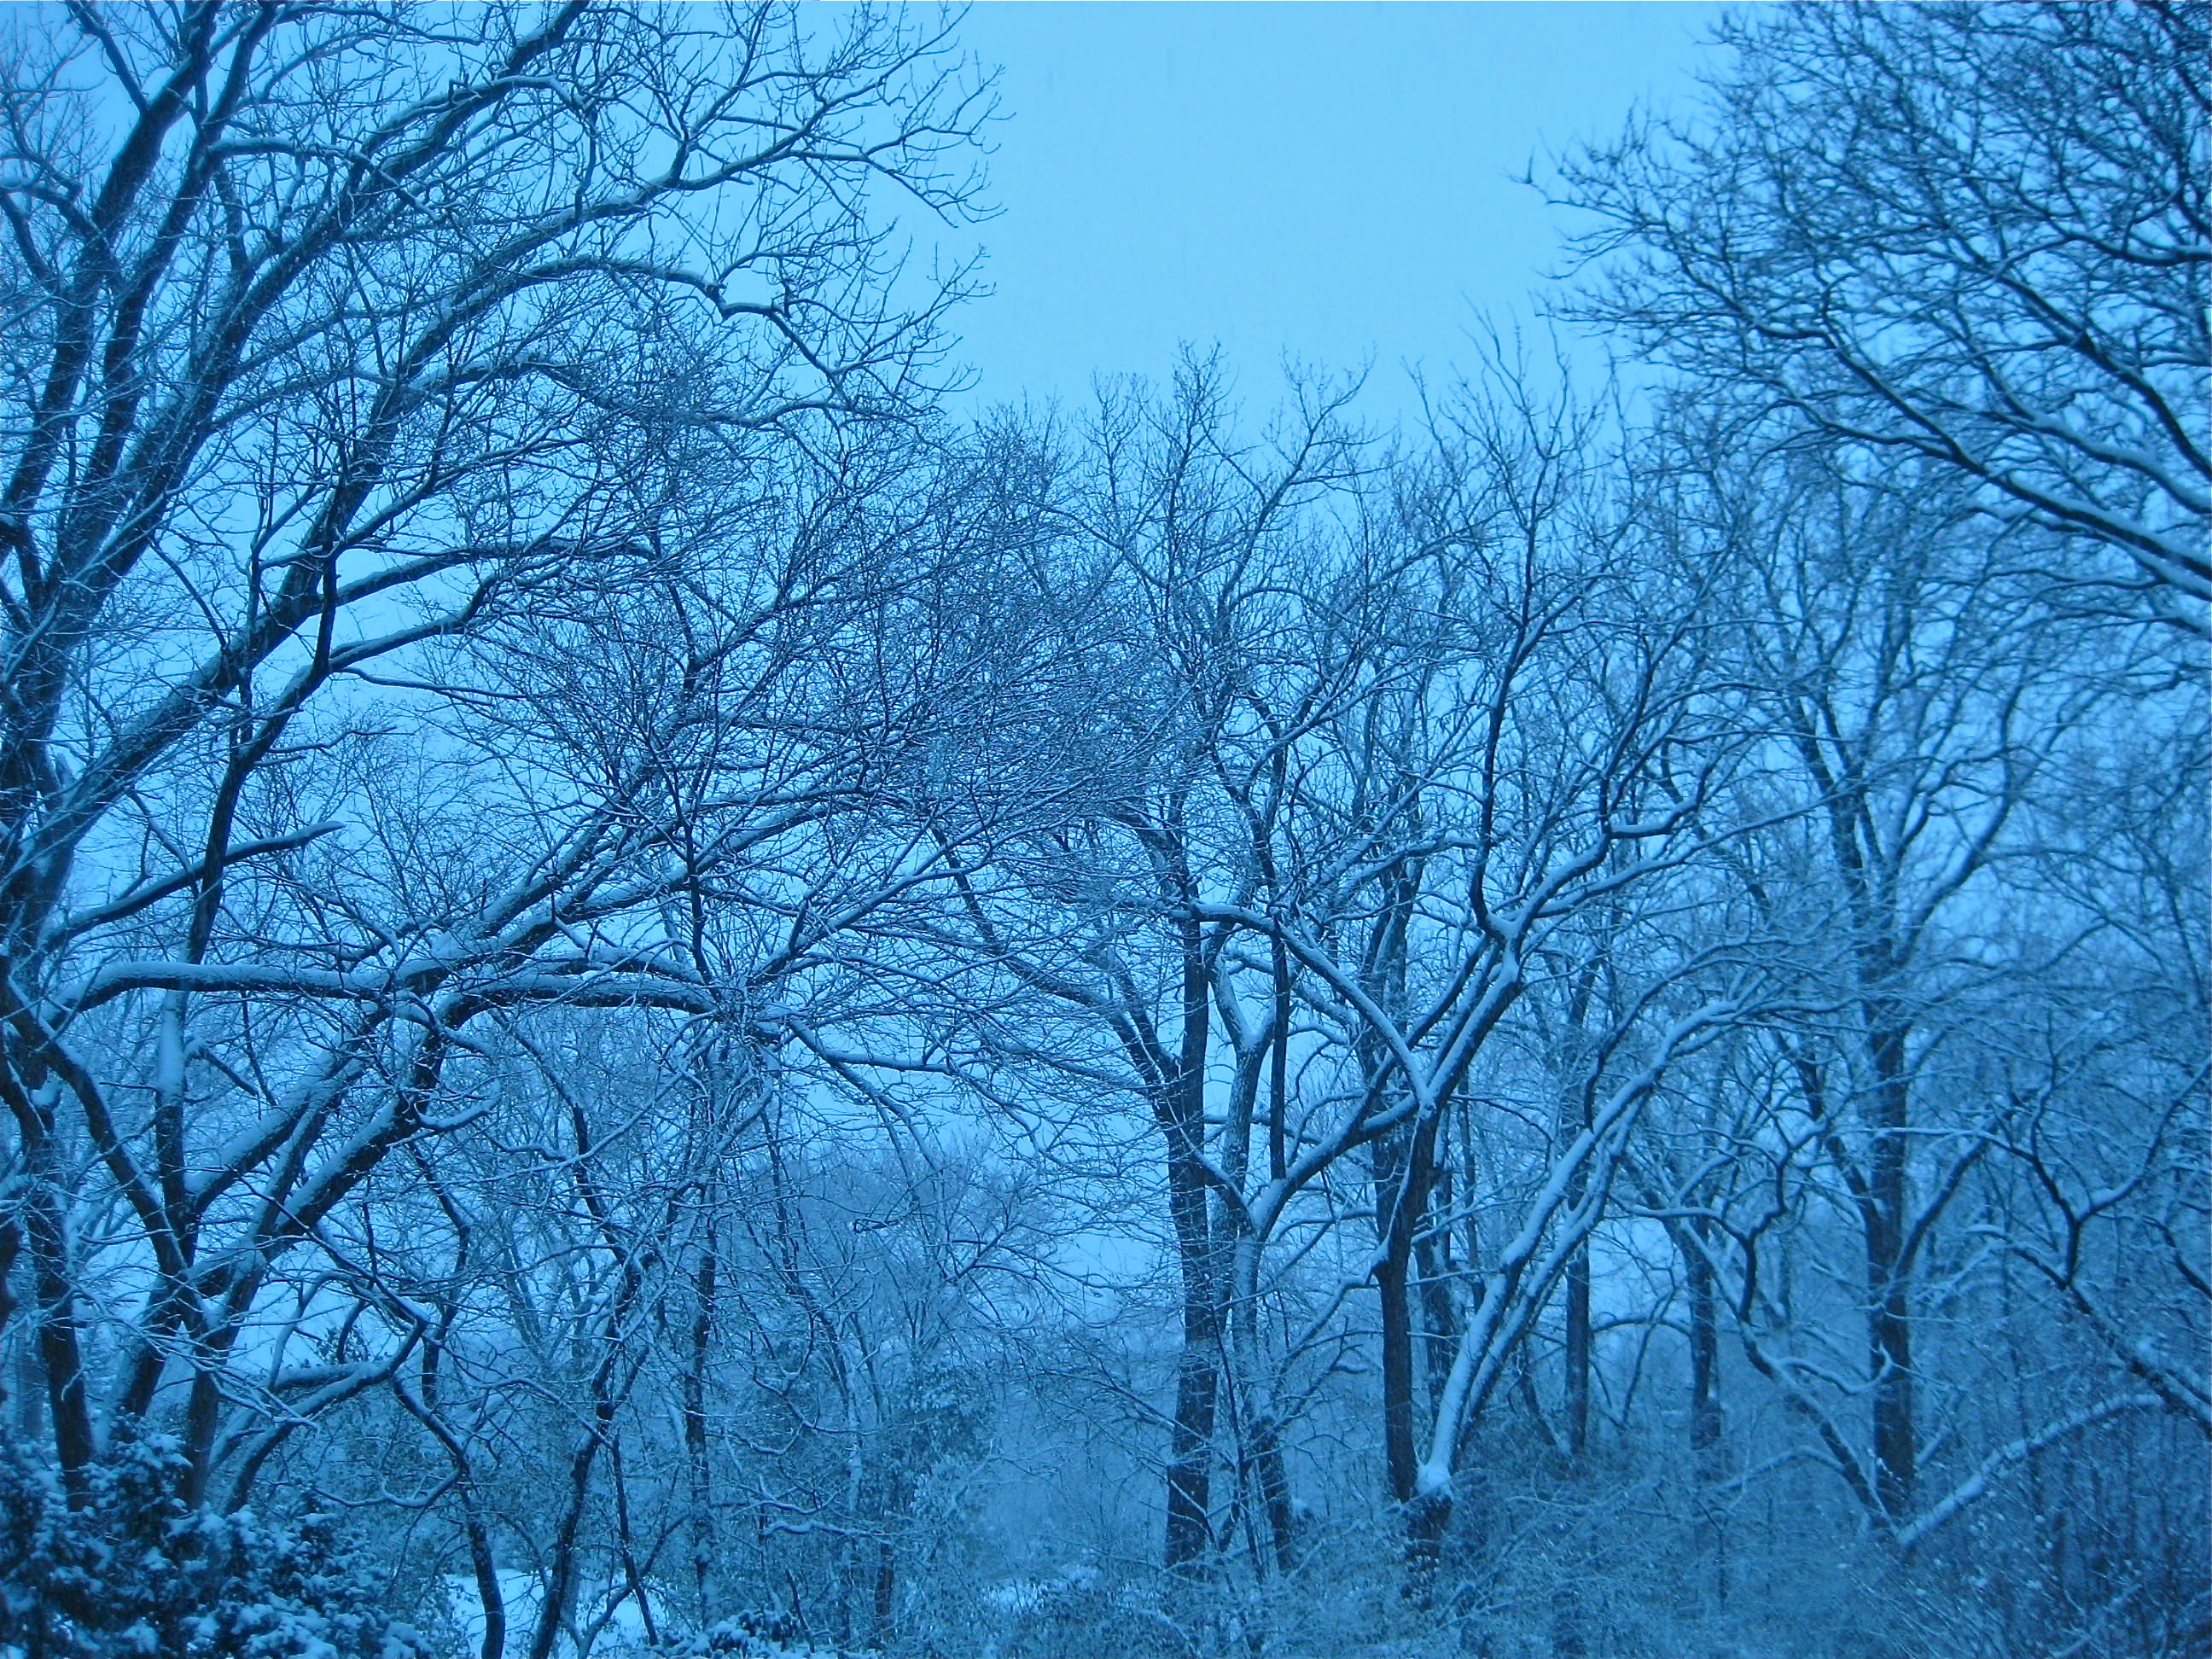 Glimpse of solace: trees in winter